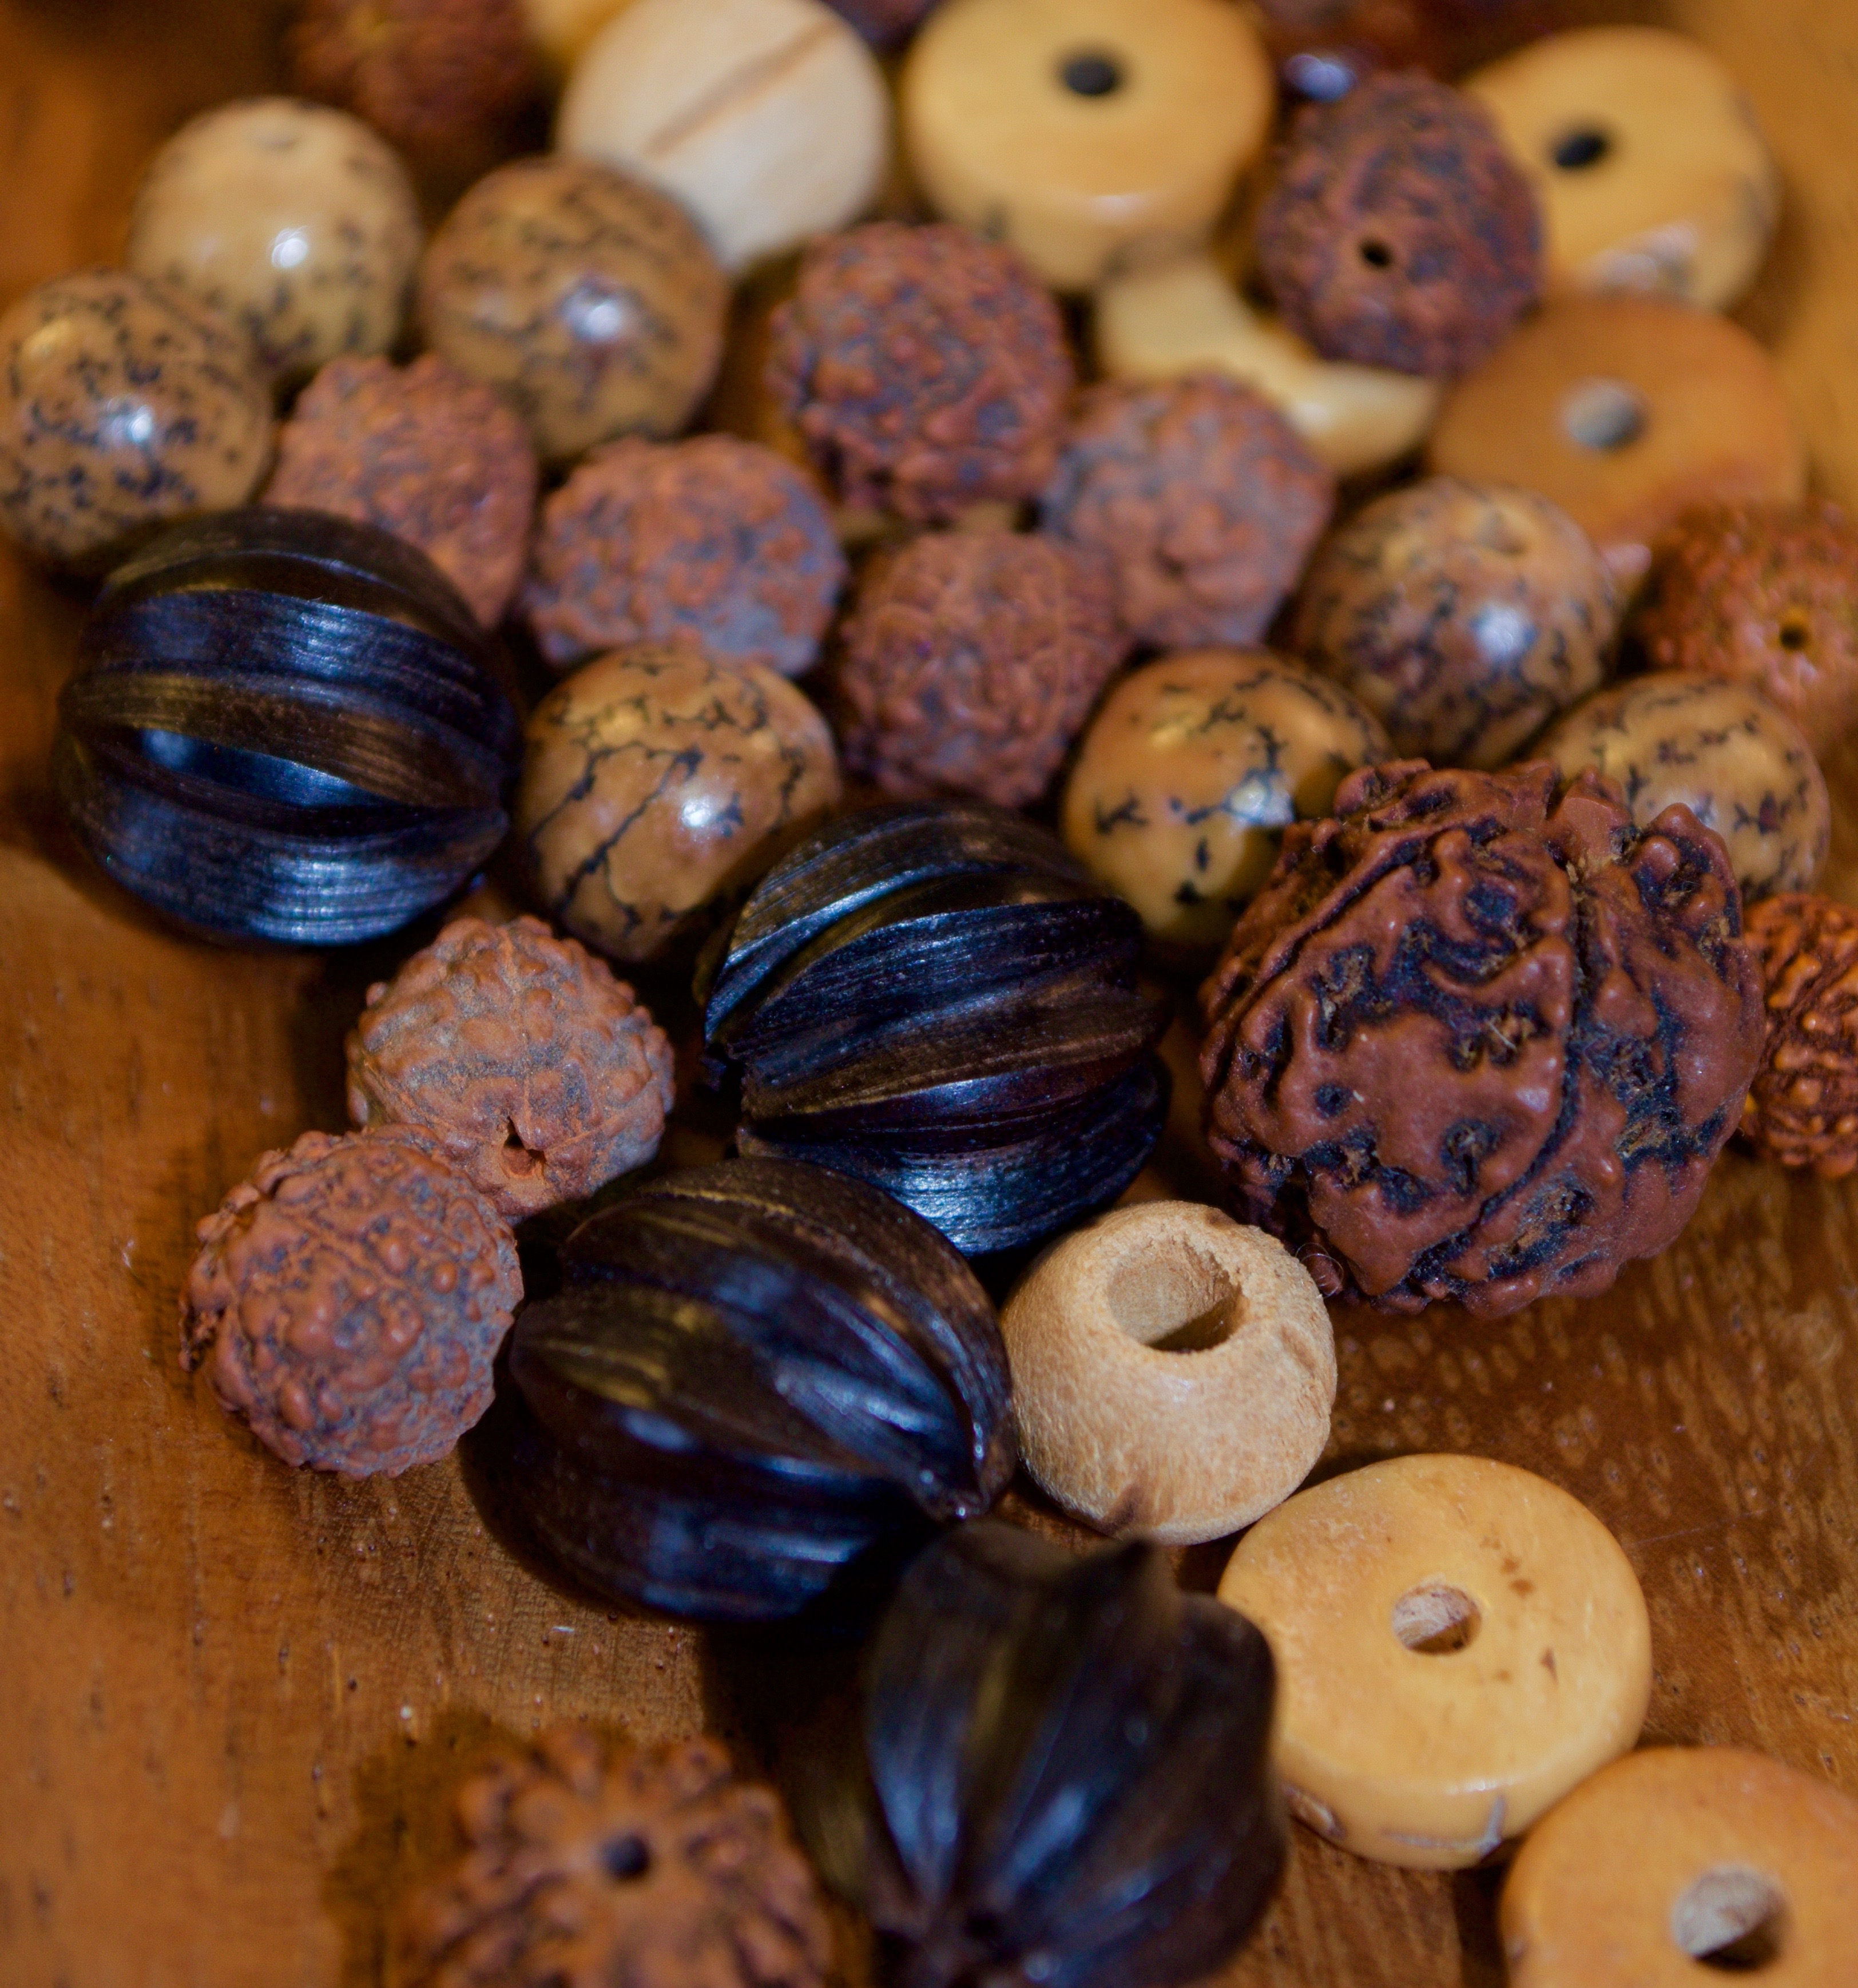 Wood and seeds